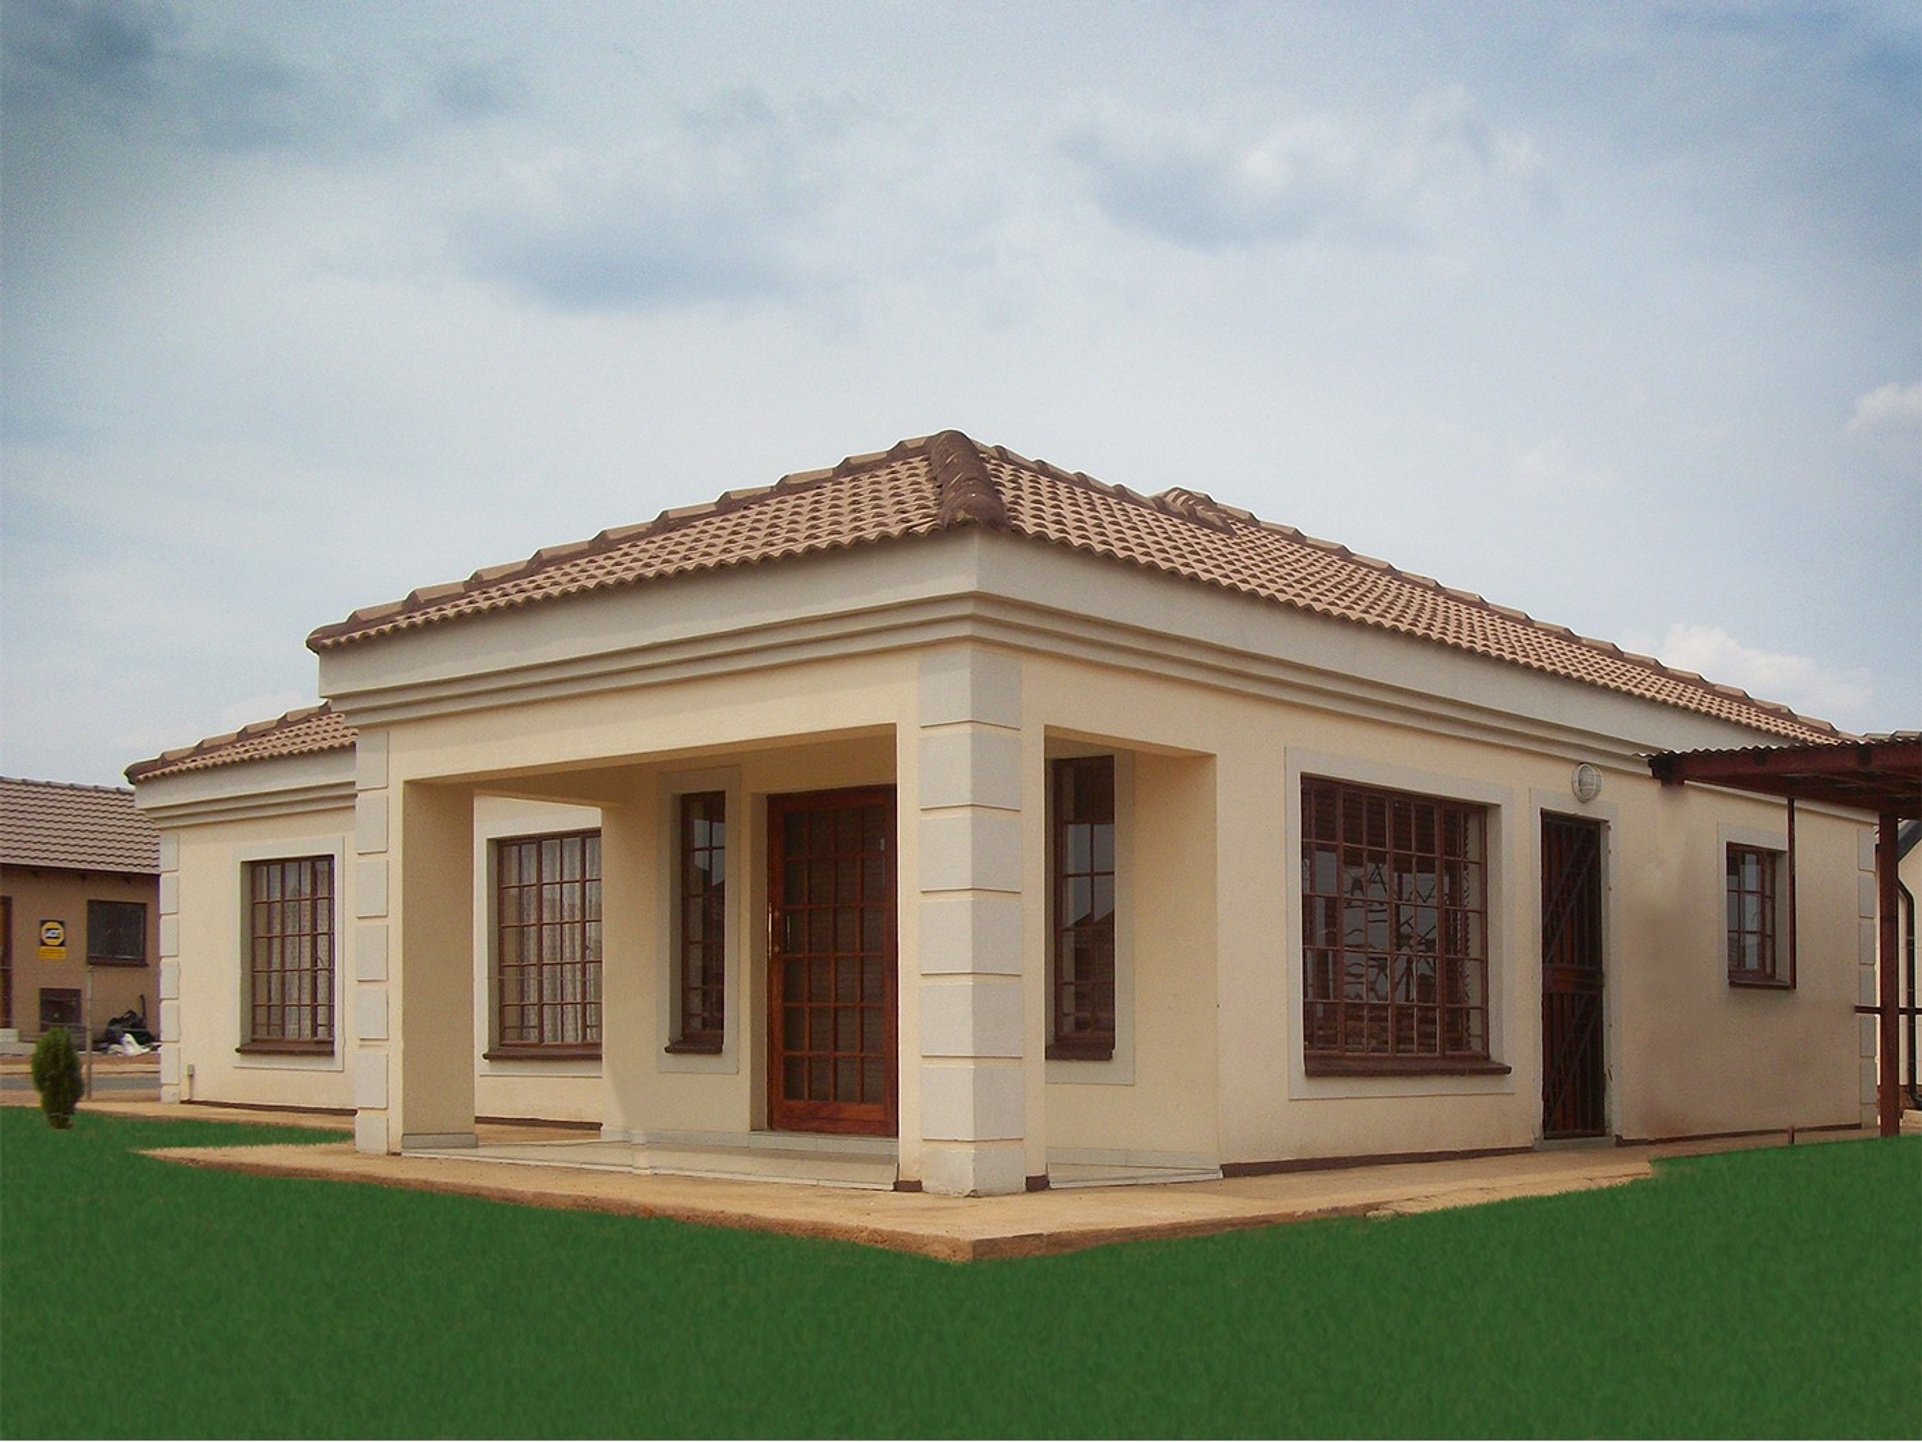 3 bedroom tuscan house plans in south africa for Home designs sa